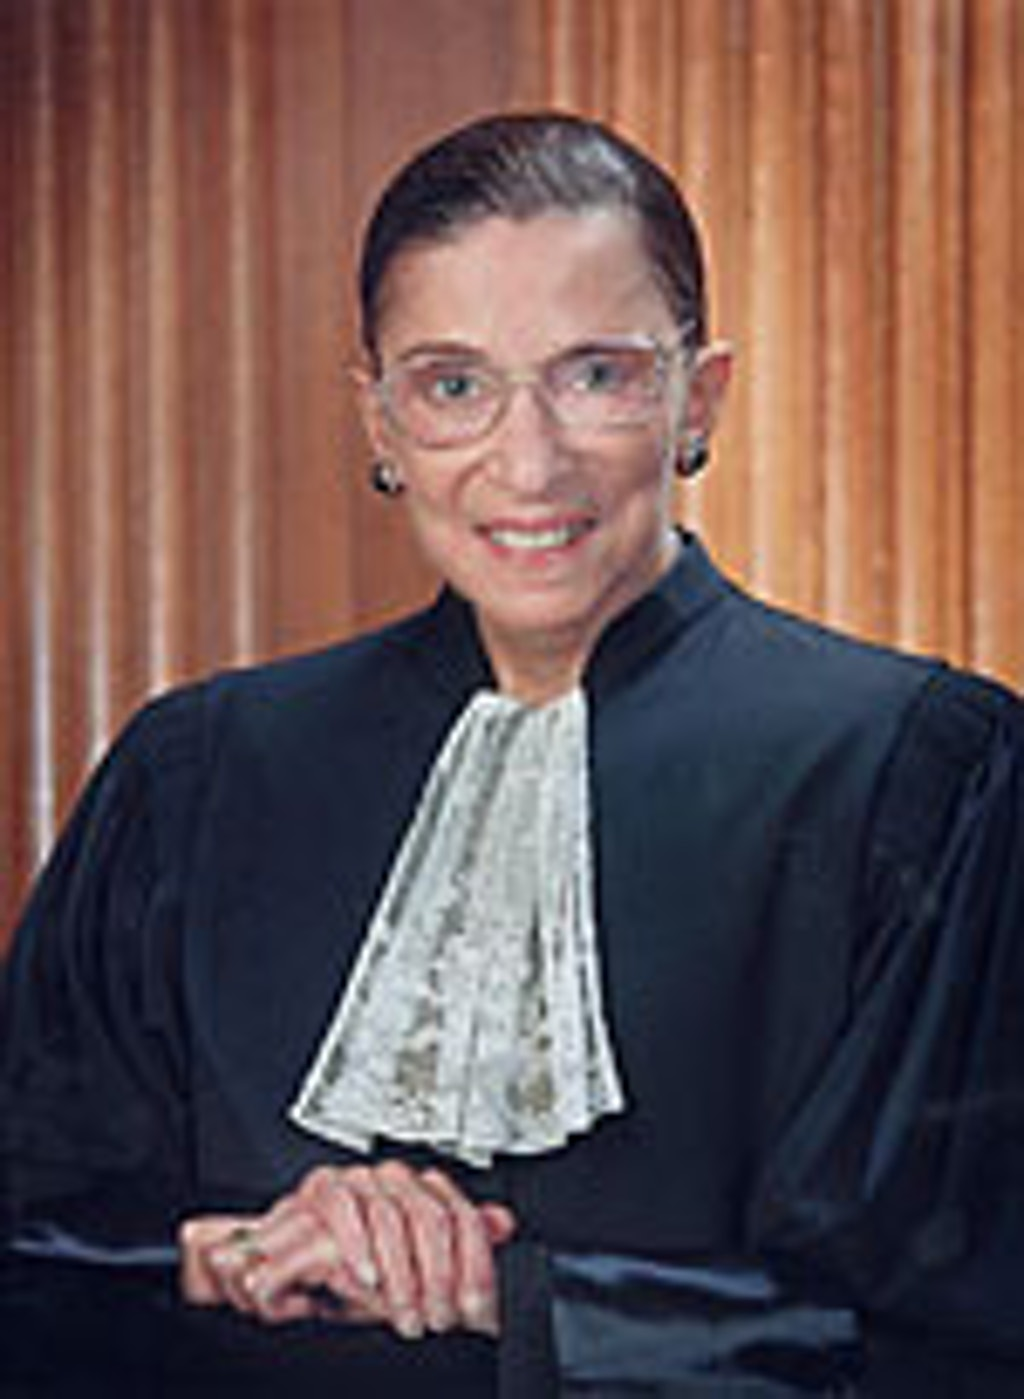 U.S. Supreme Court Justice Ruth Bader Ginsburg, Death Penalty Skeptic, Has Died